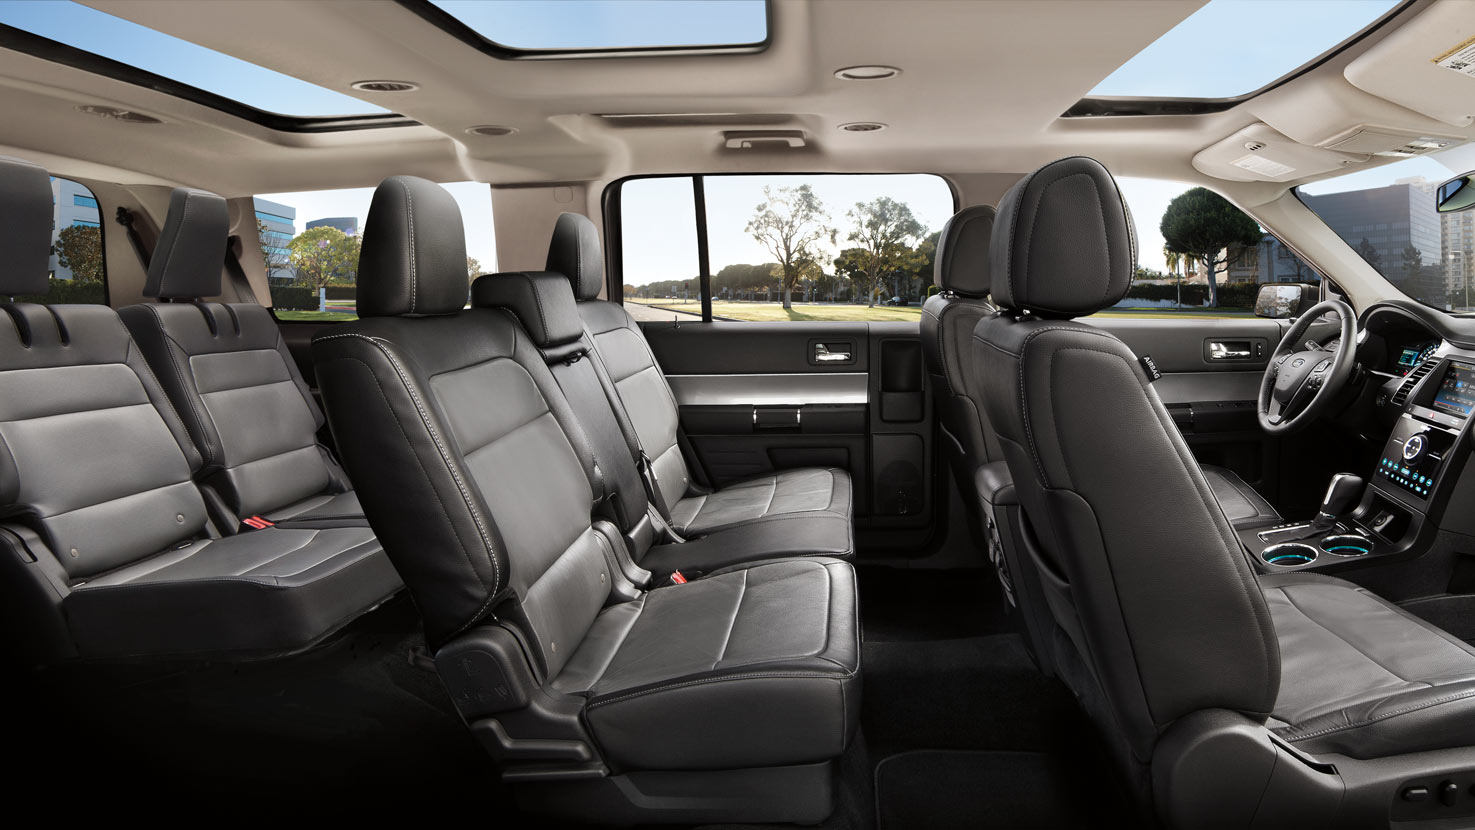 Suv Interior Images Reverse Search